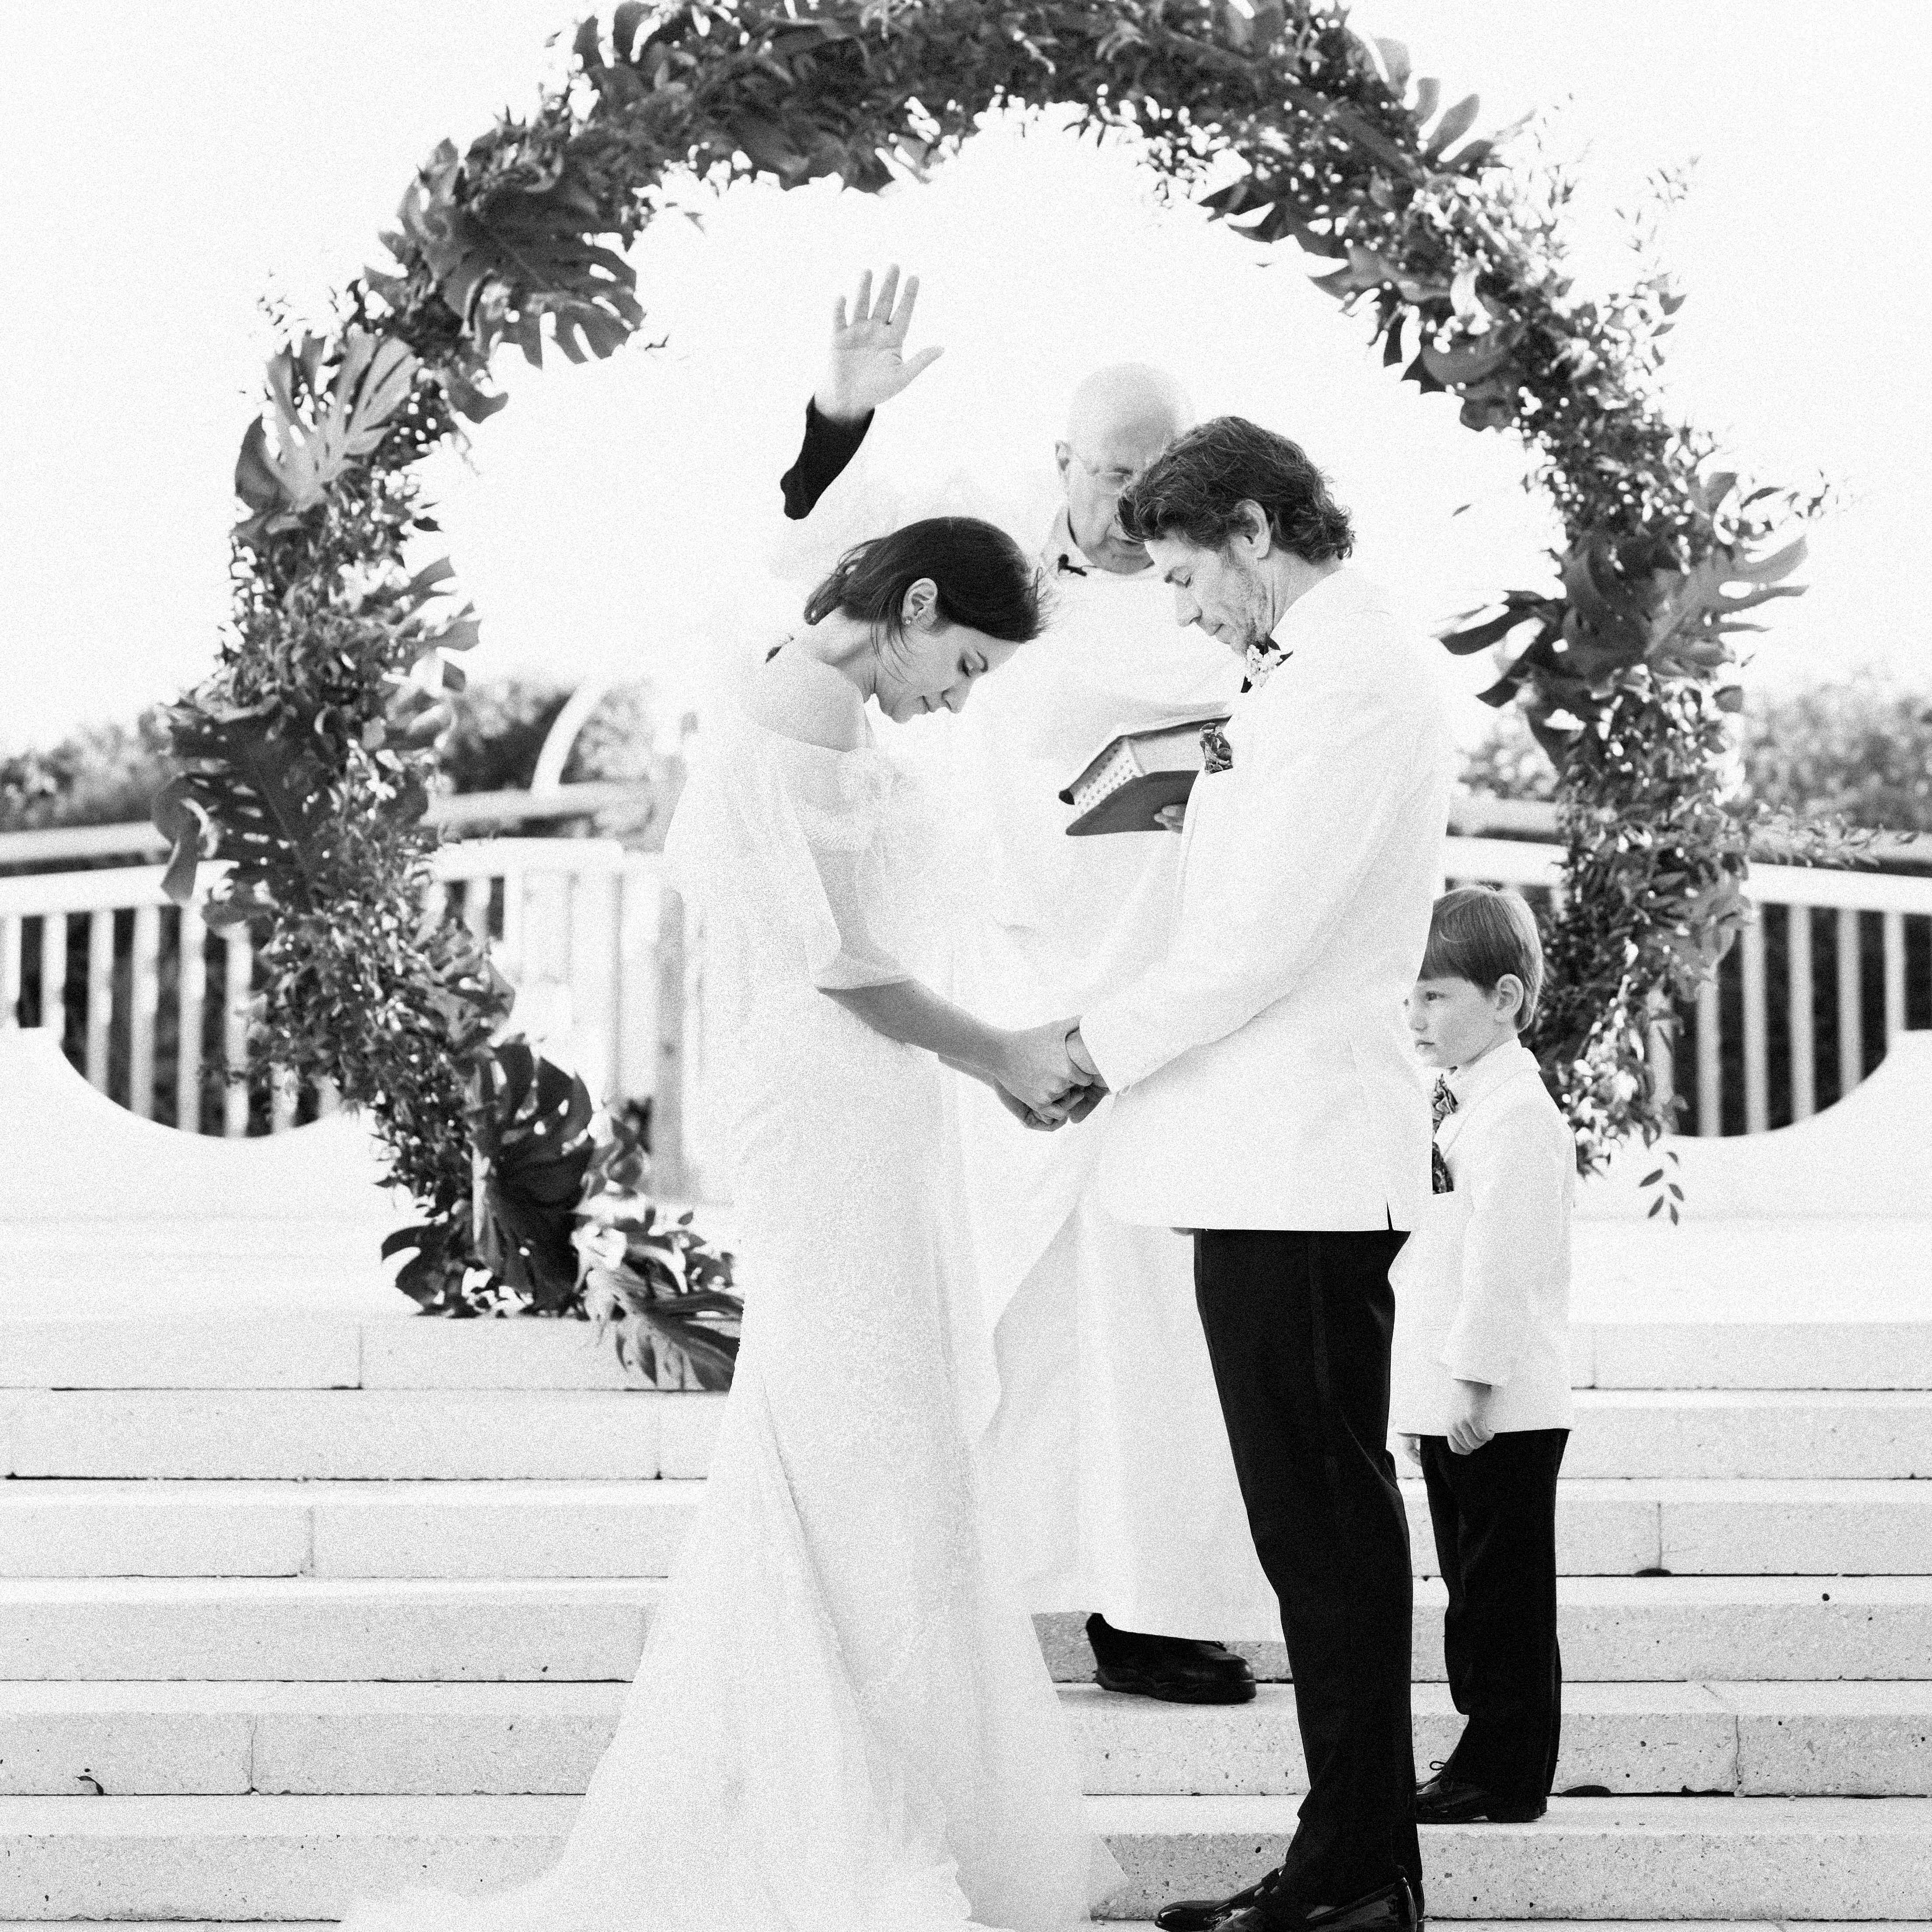 Songs For A Beach Wedding Ceremony: 60 Amazing Wedding Altar Ideas & Structures For Your Ceremony